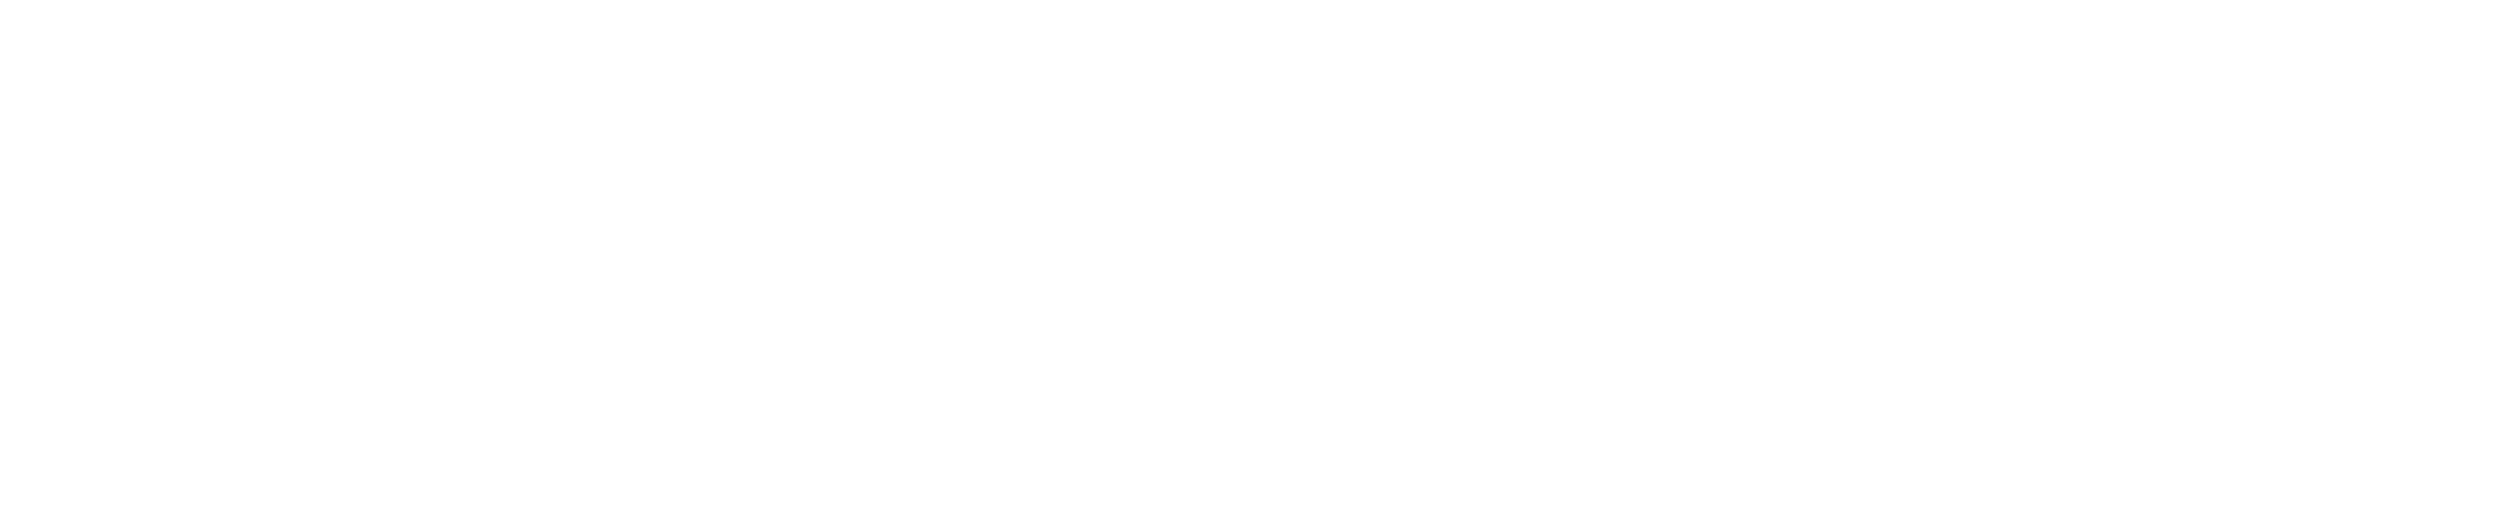 correctlogo-usaid.png